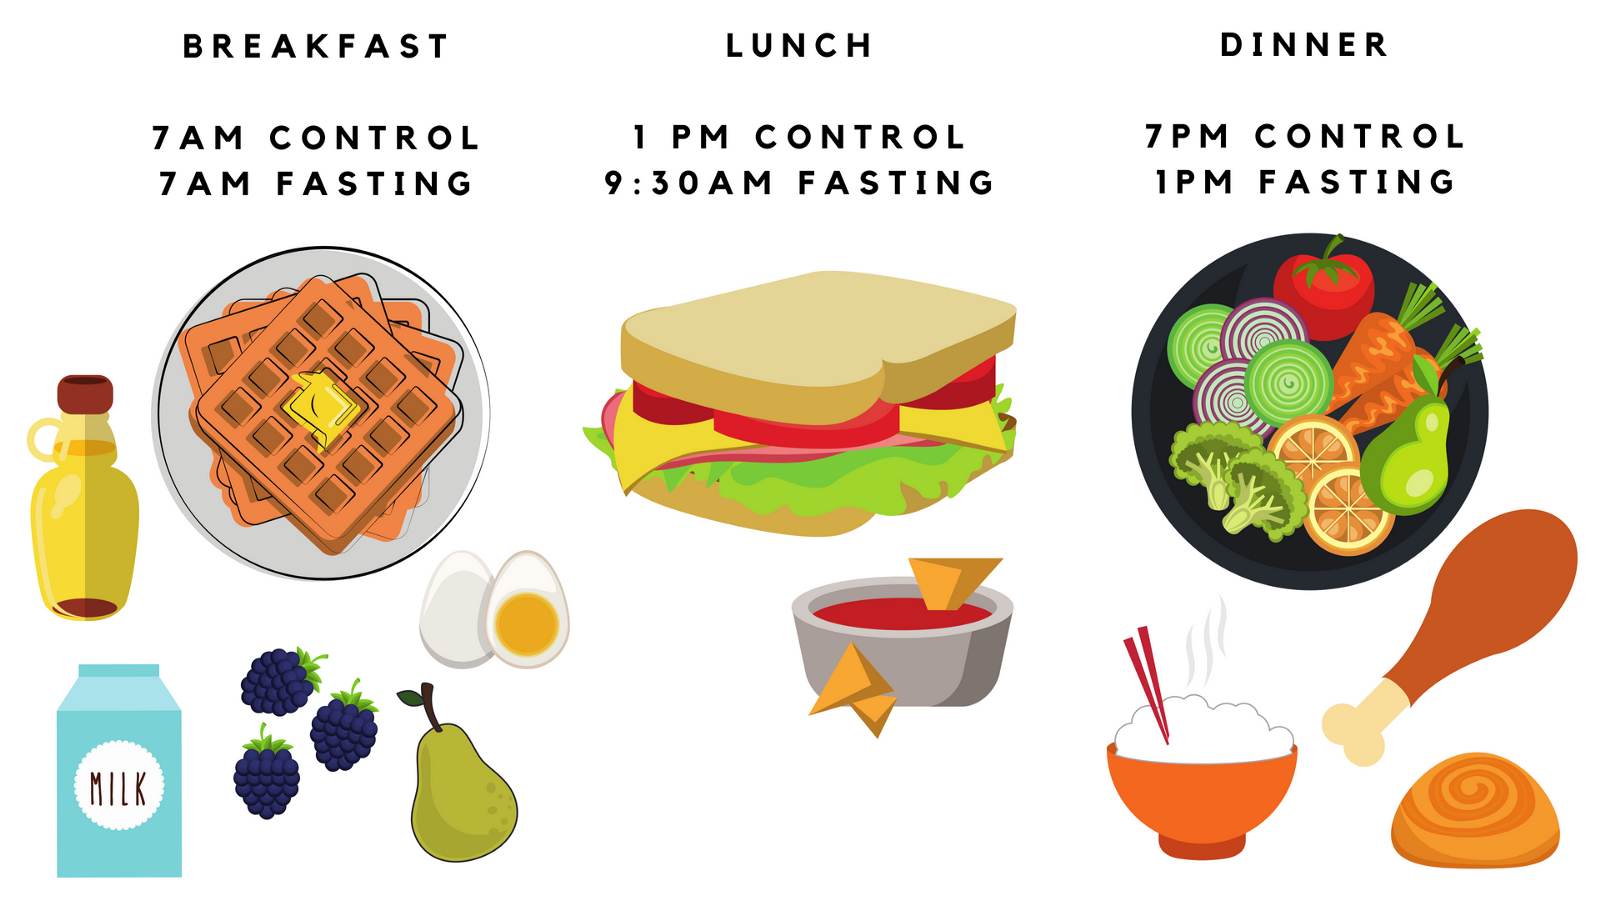 Late Dinners Make You Sicker A Case For Breakfast And Early Time Pet Engineering Schematics Wow Schematic Of An Example Meal Composition Timing Used In Petersons Study Restricted Feeding Image Created By Paige Jarreau